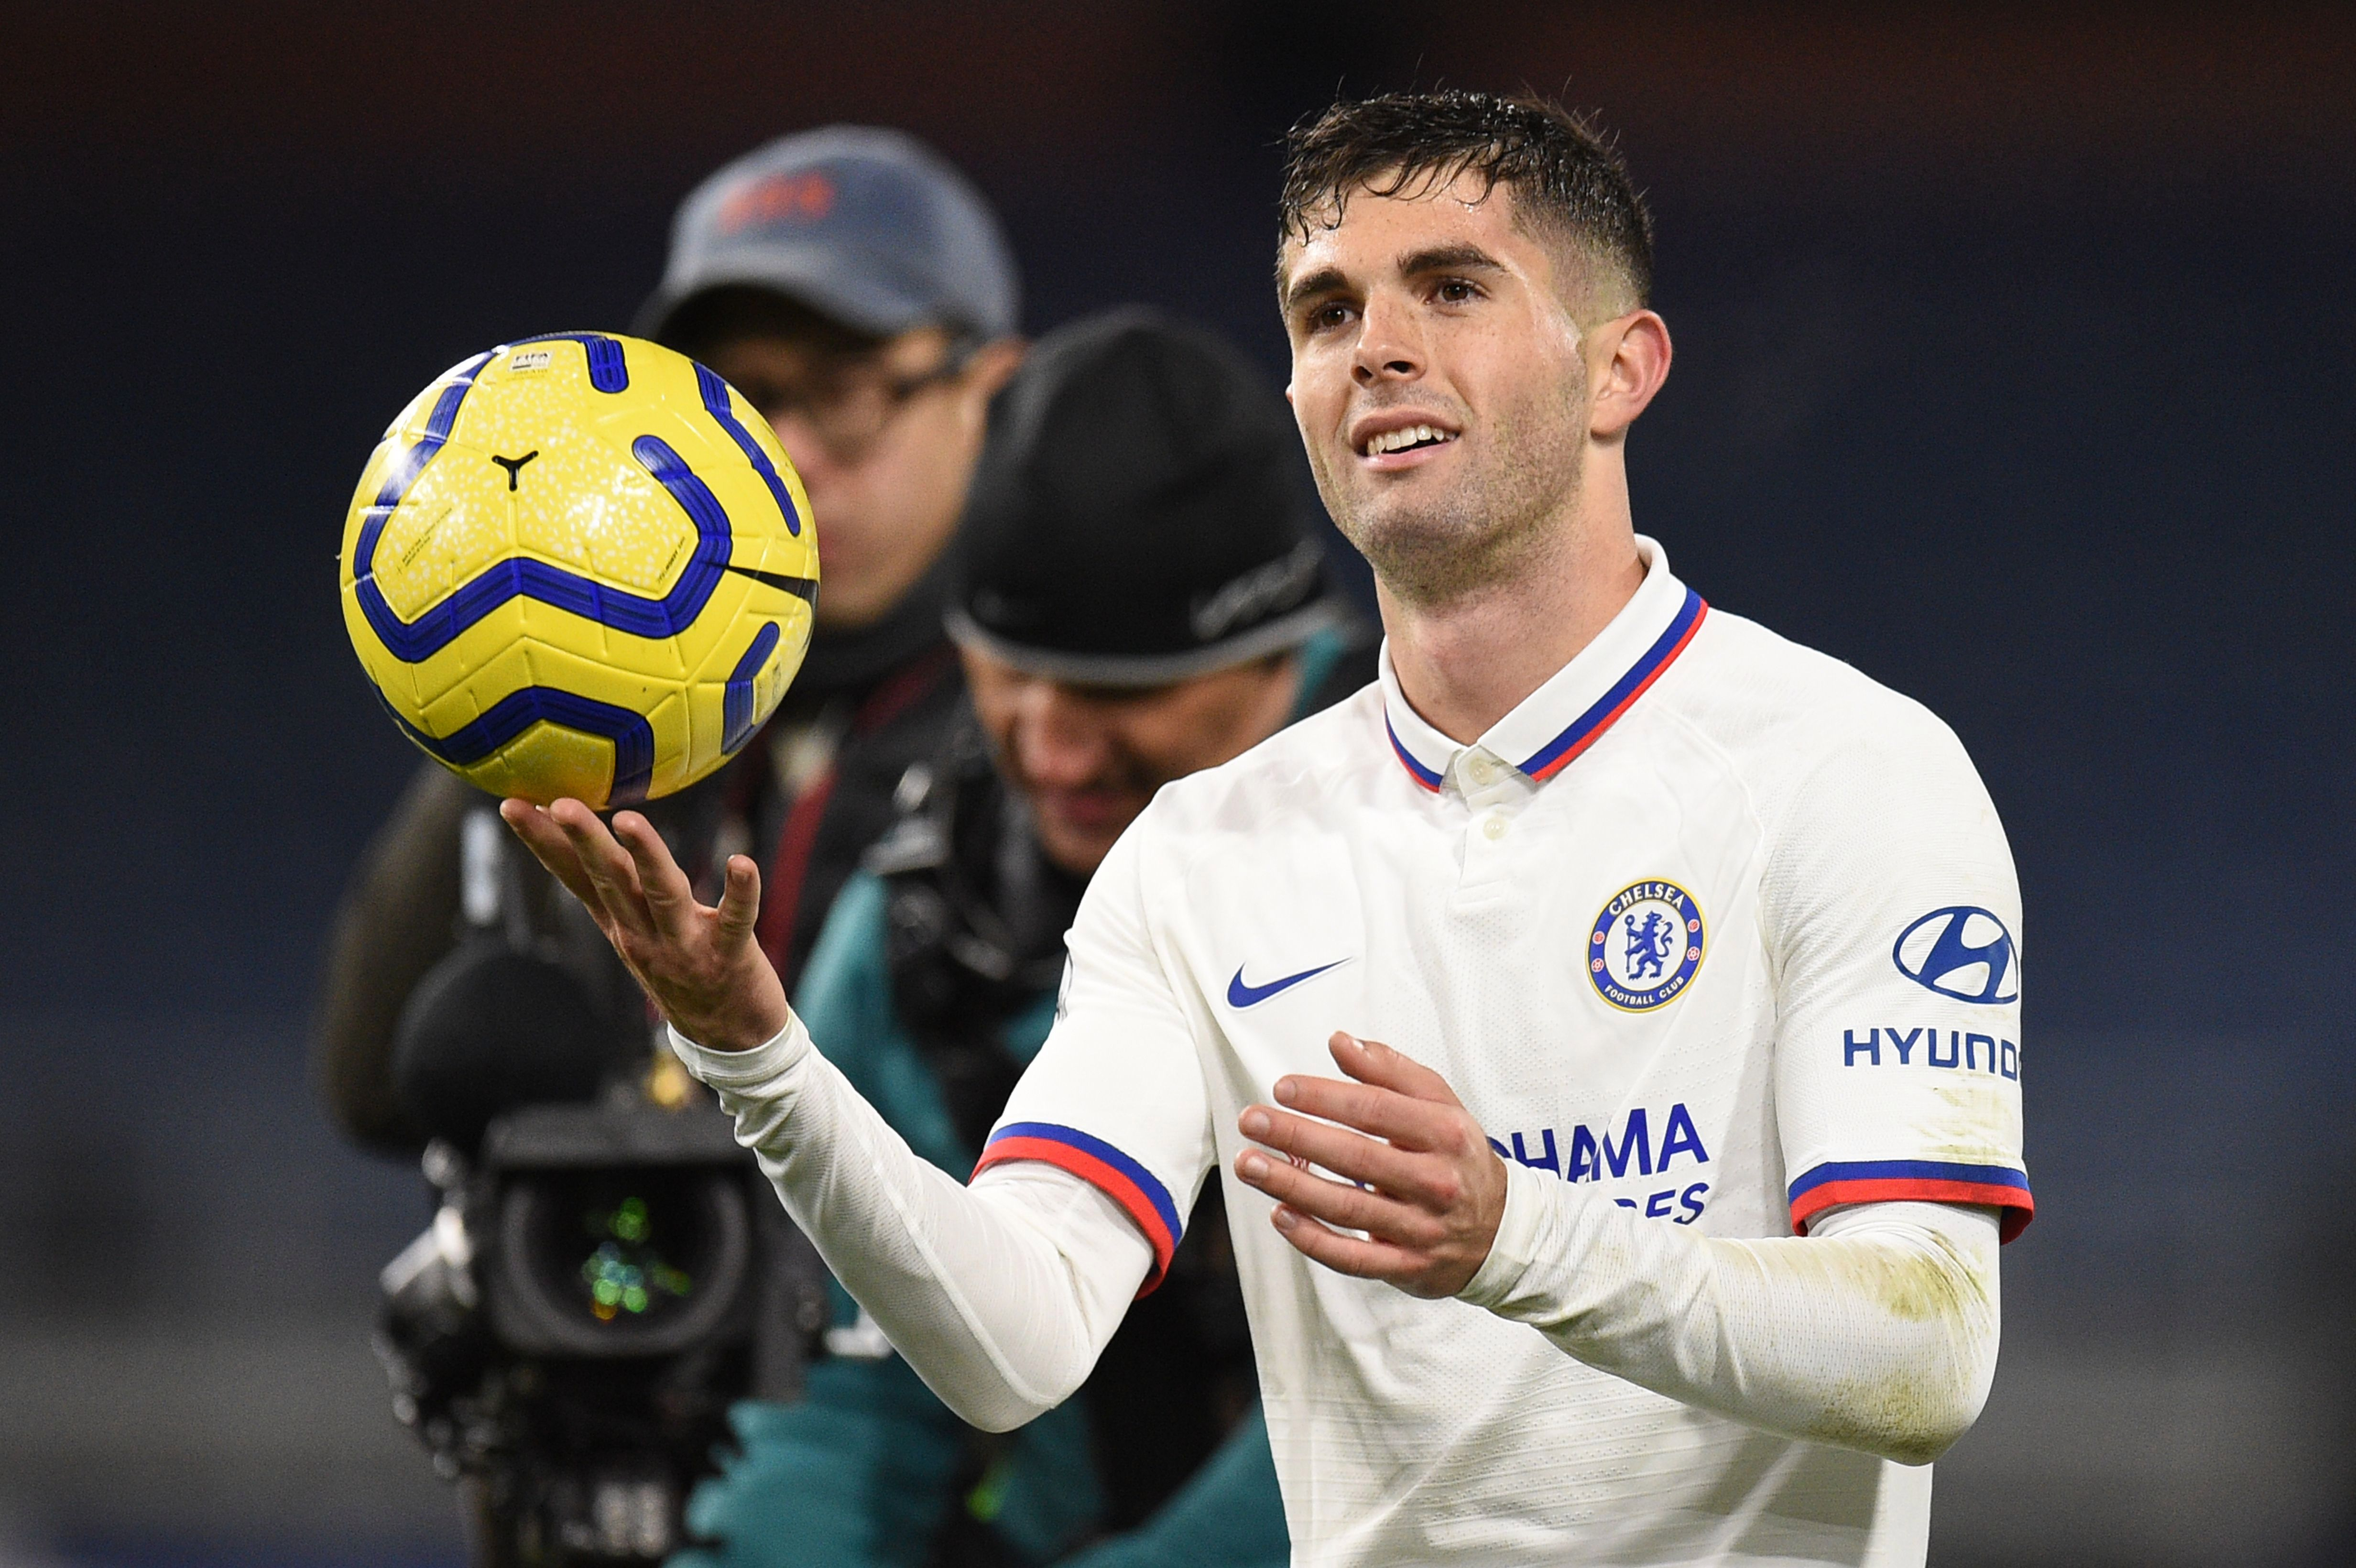 Christian Pulisic left Turf Moor with the match ball